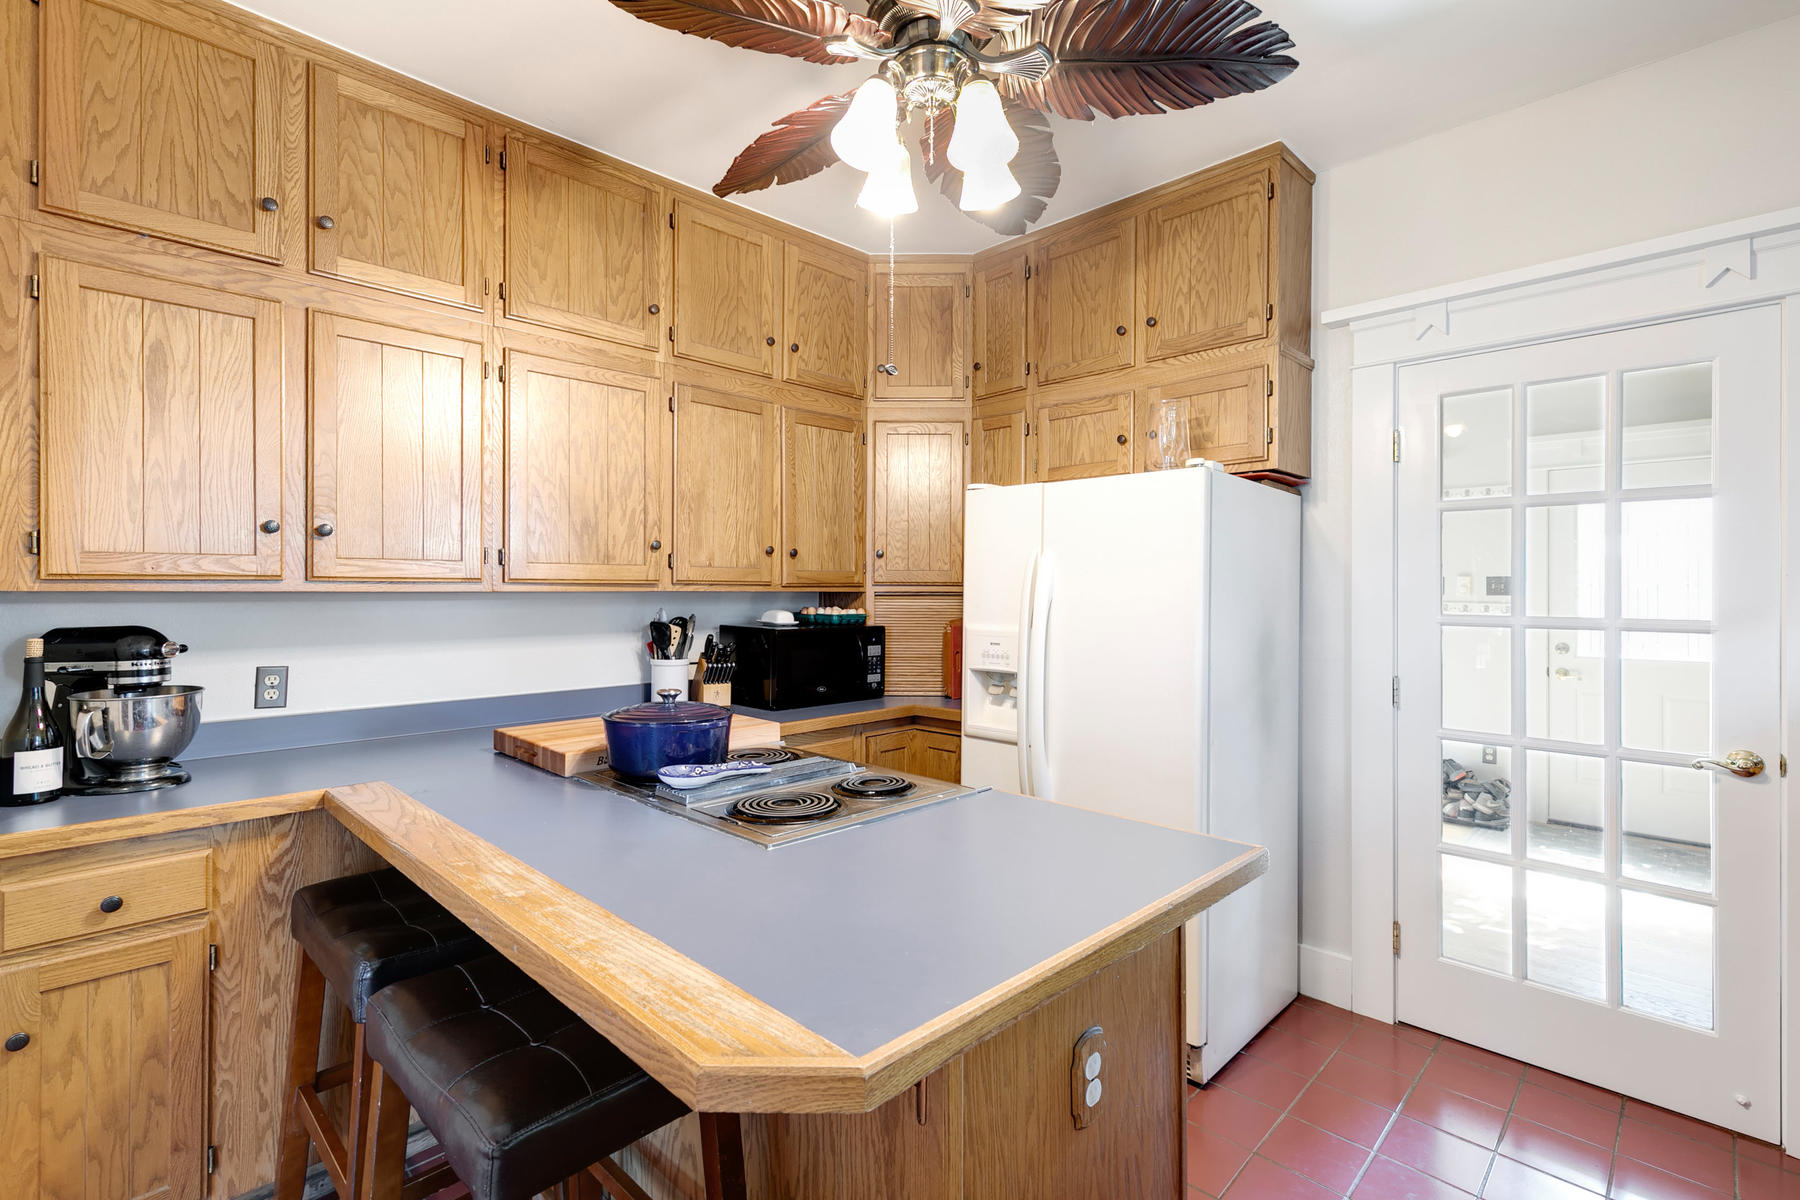 3230 S Lincoln St Englewood CO-014-038-14-MLS_Size.jpg